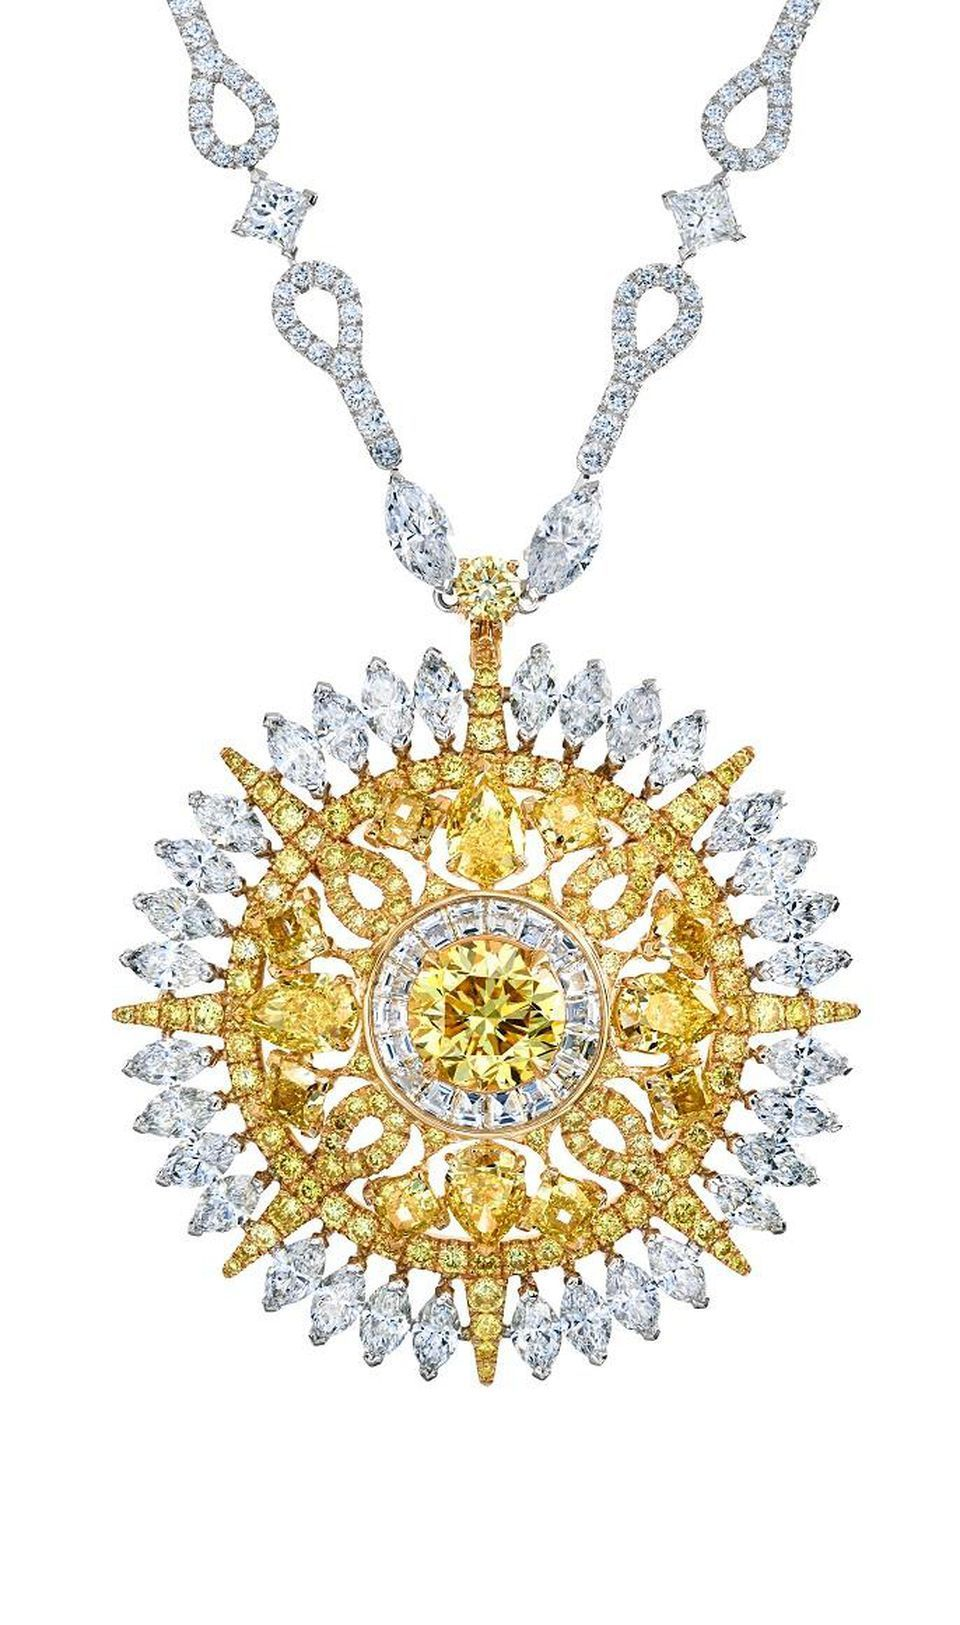 Ra diamond pendant necklace from the de beers diamond legends